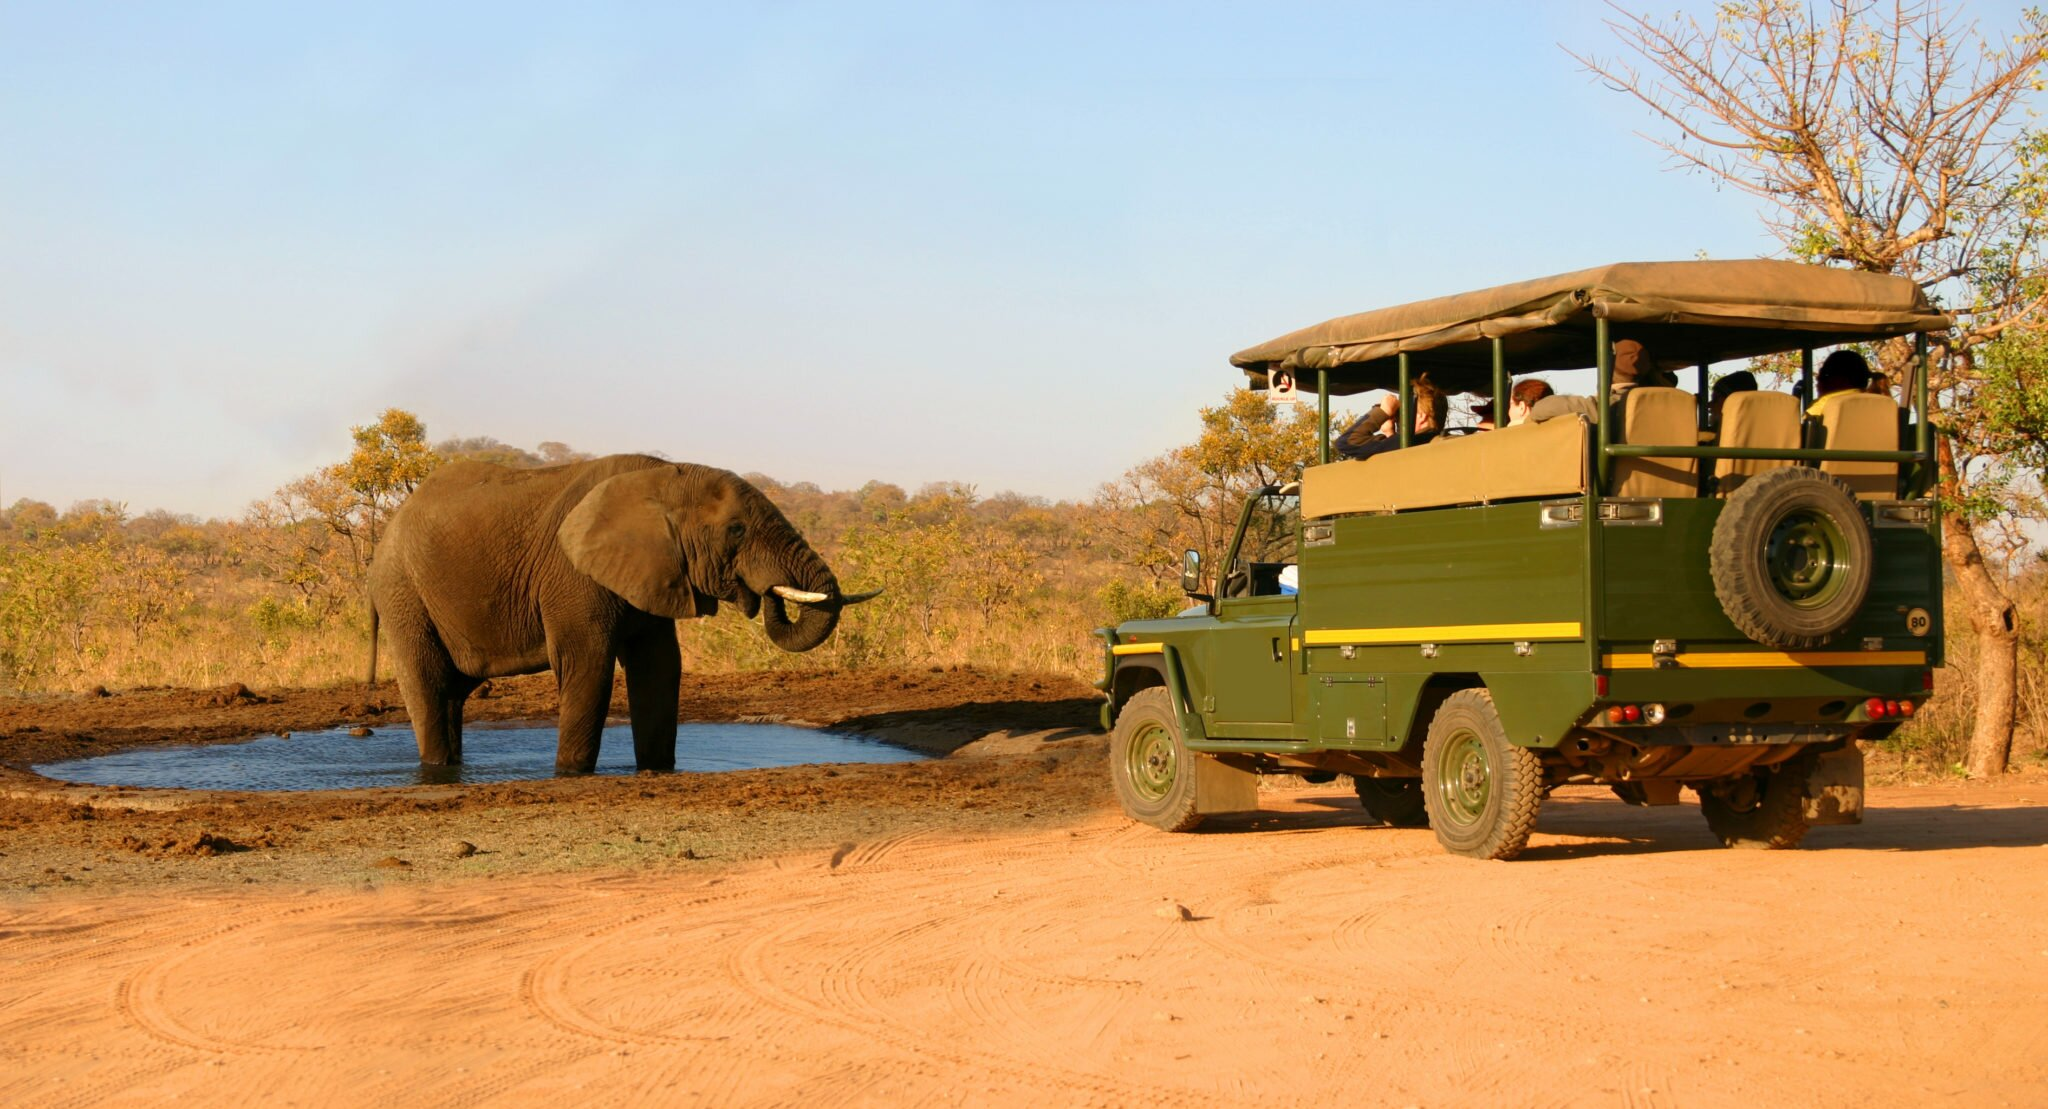 Elephant and safari jeep